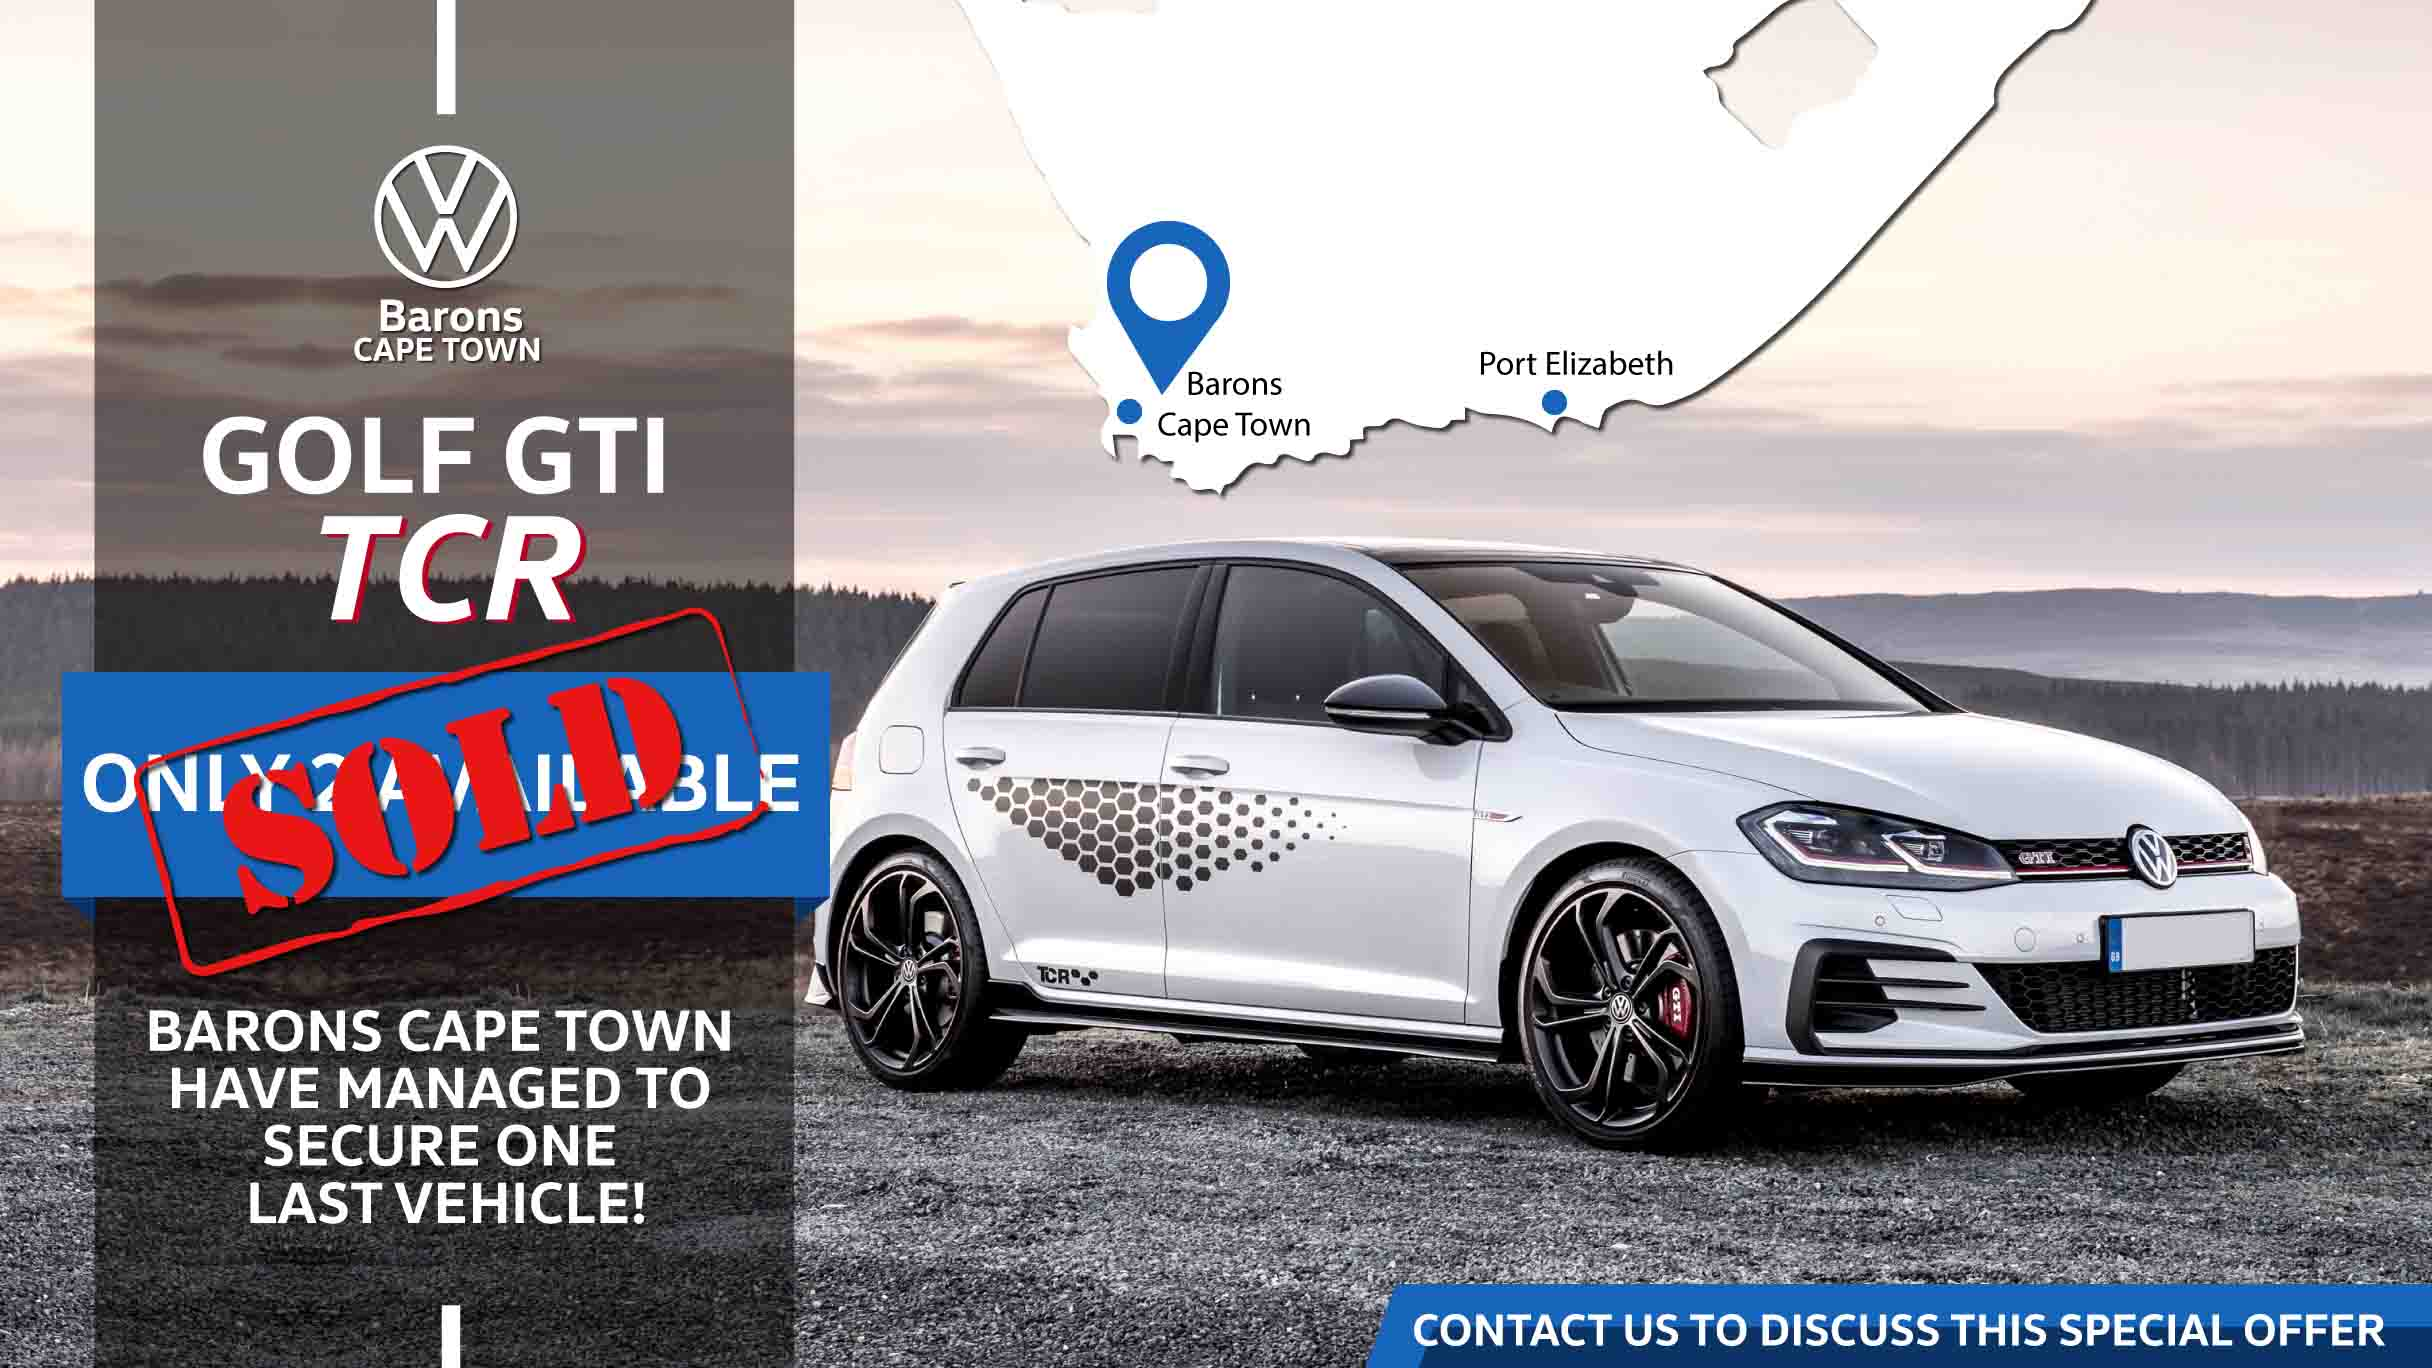 Barons Cape Town has one more Golf GTITCR